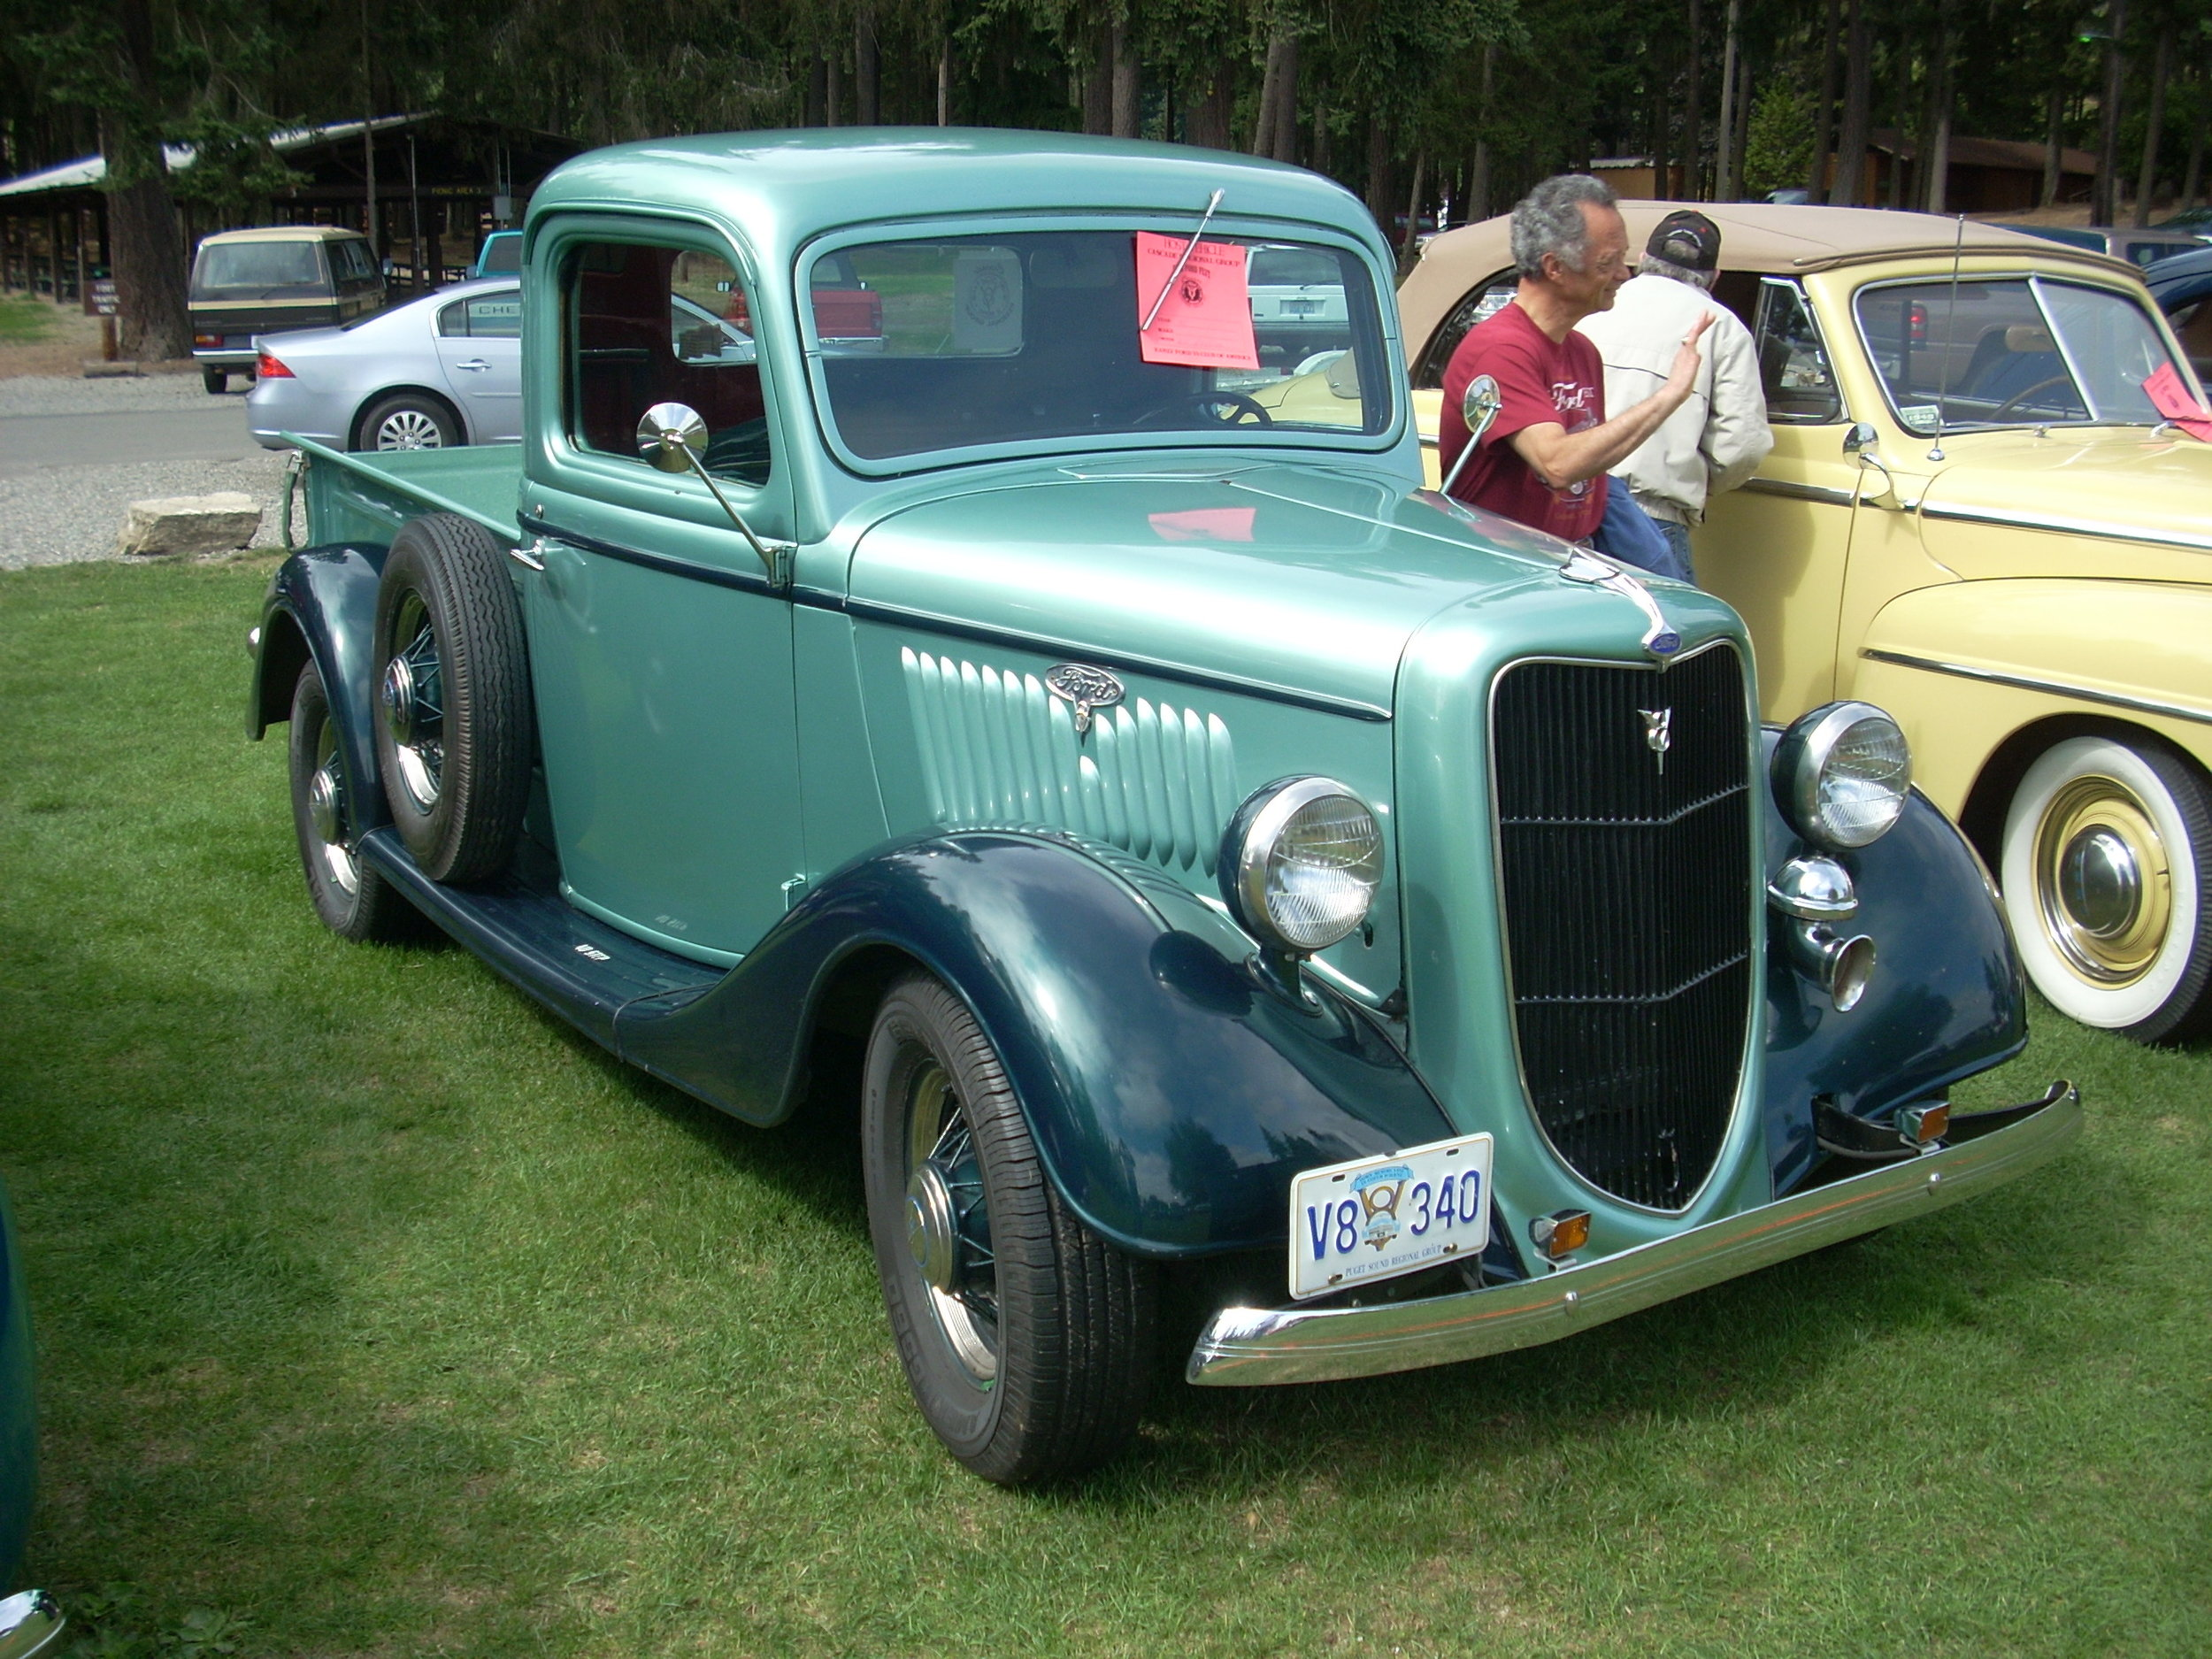 Bill Henline and Trudy Klein - 1935 Ford Pickup